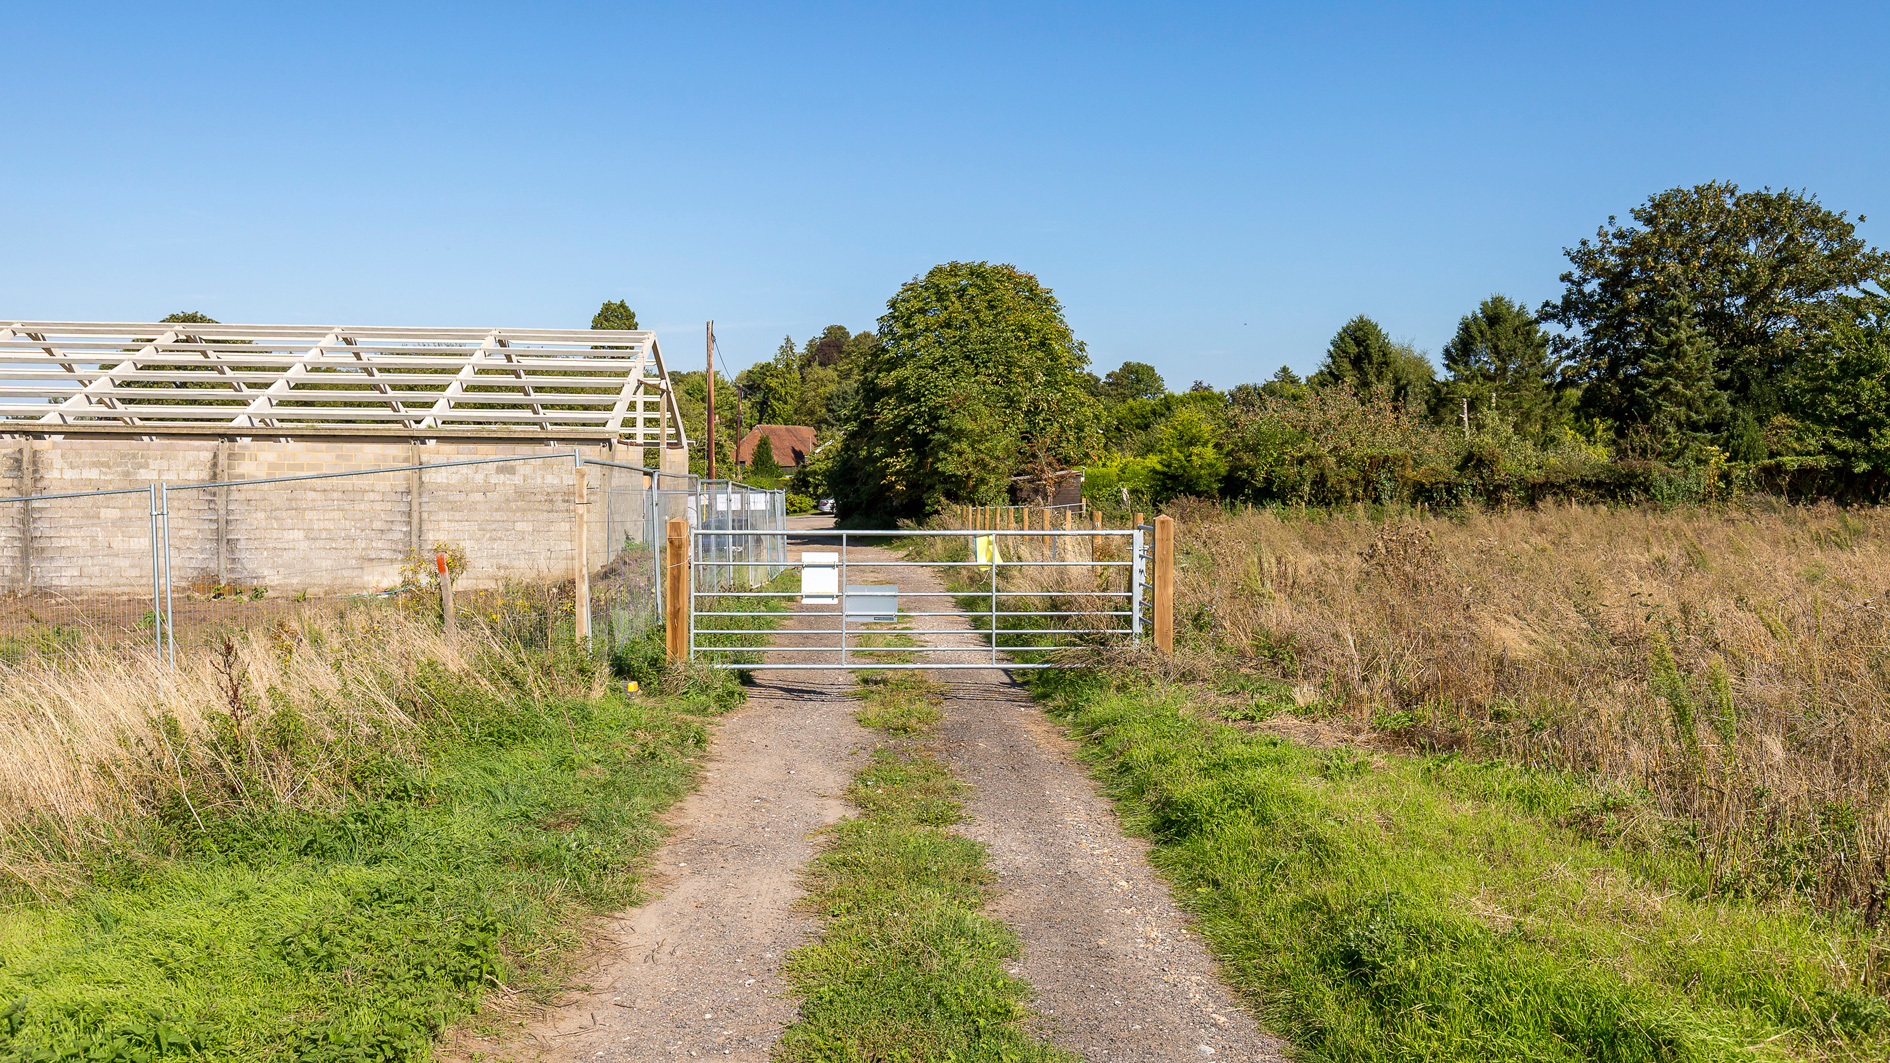 Land for sale at Manor Farm Cottages access